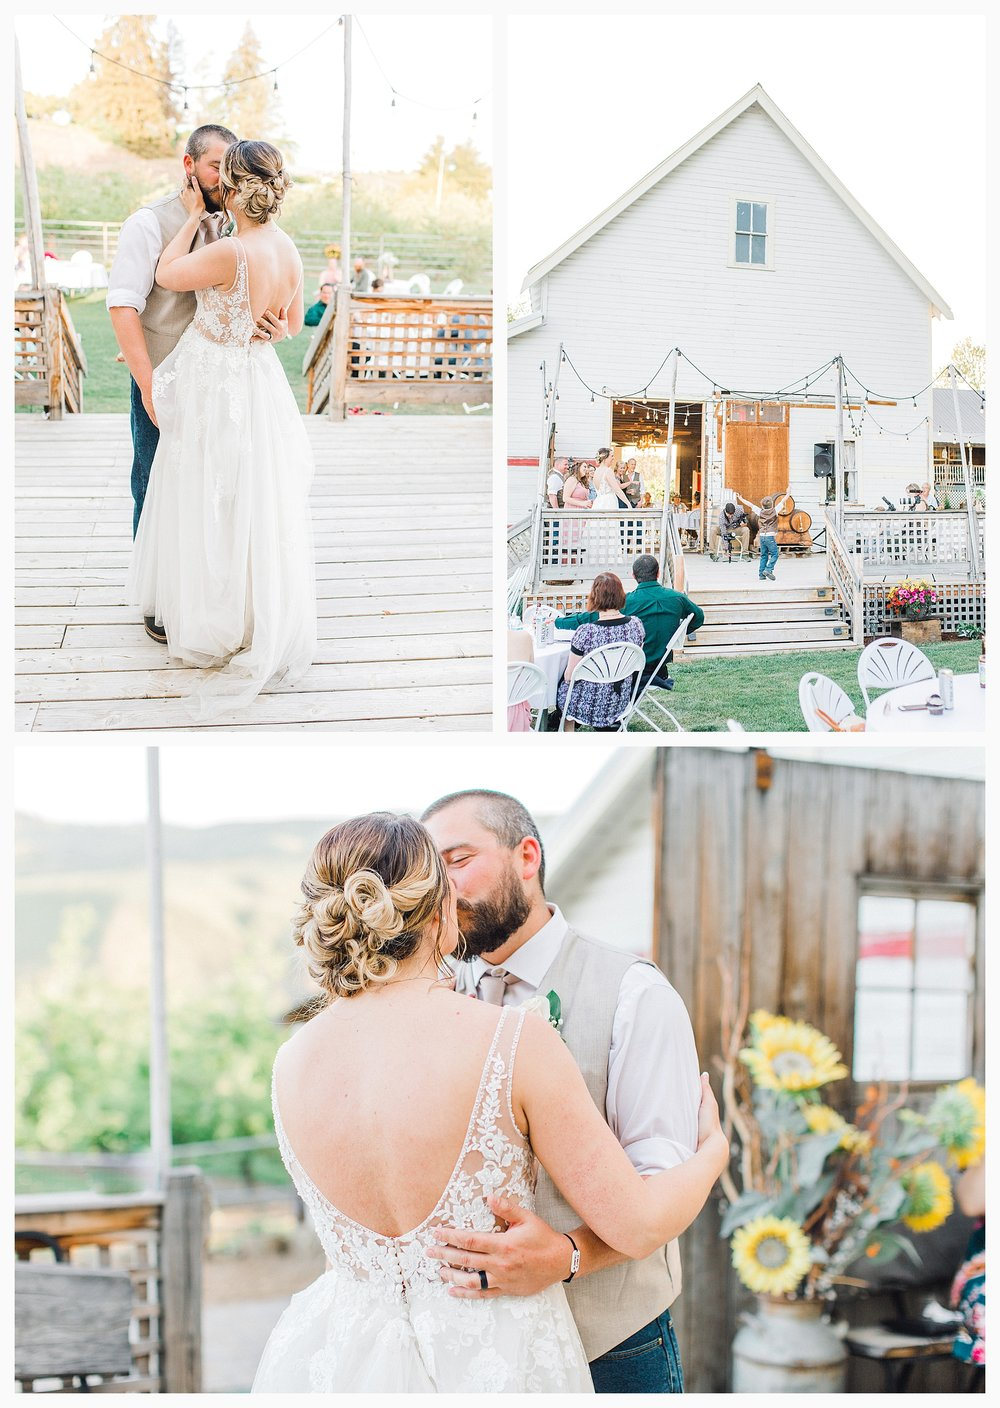 Rustic barn wedding in Wenatchee Washington at Sunshine Ranch on Easy Street, Emma Rose Company Seattle PNW Light and Airy Wedding Photographer_0109.jpg